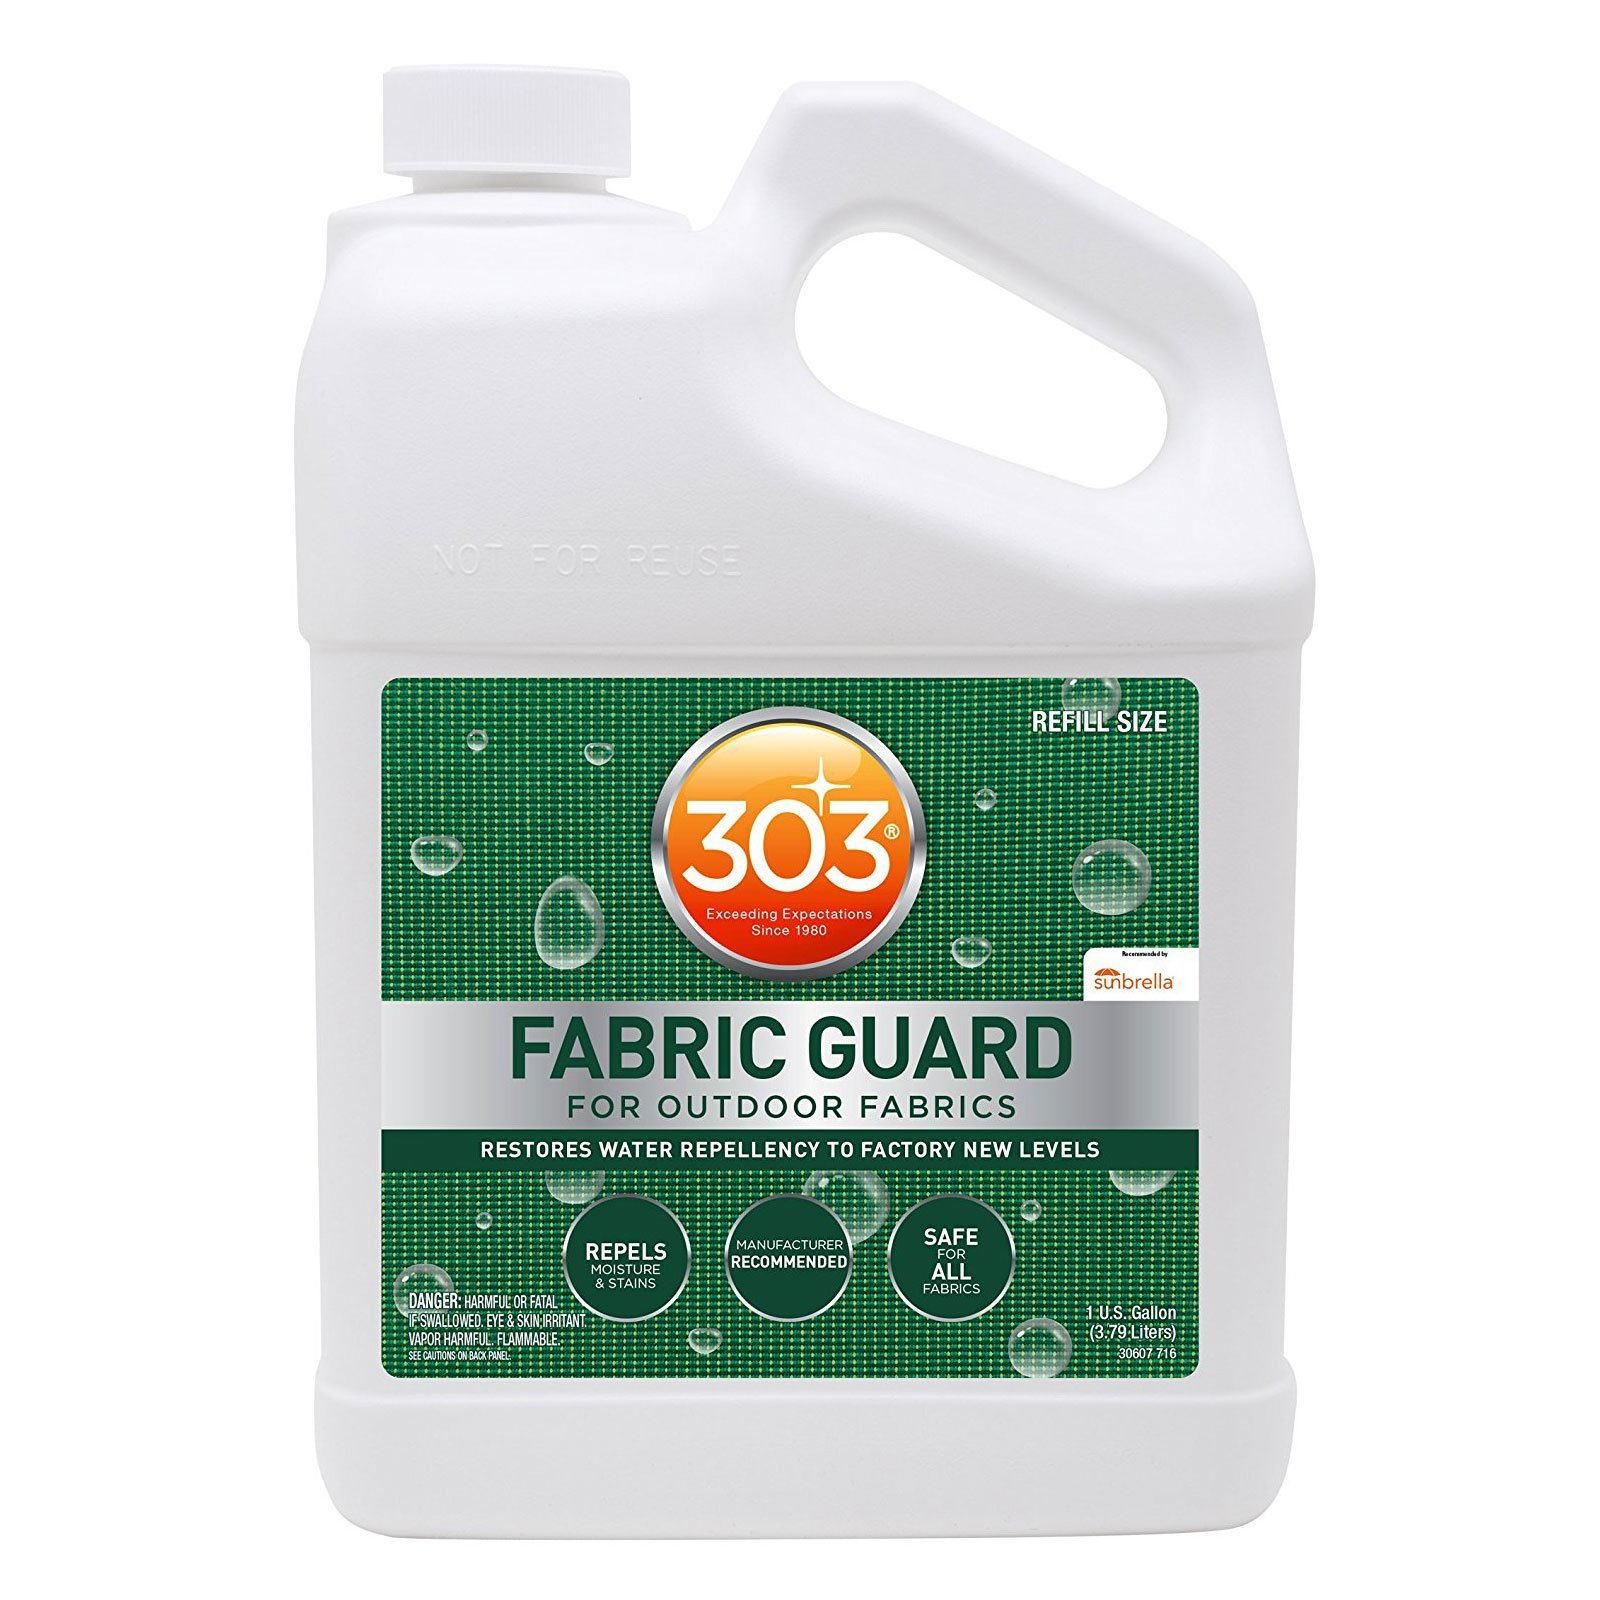 303 (30607-4PK) Fabric Guard, Upholstery Protector, Water and Stain Repellent, 128 fl. oz., Pack of 4 by 303 Products (Image #2)